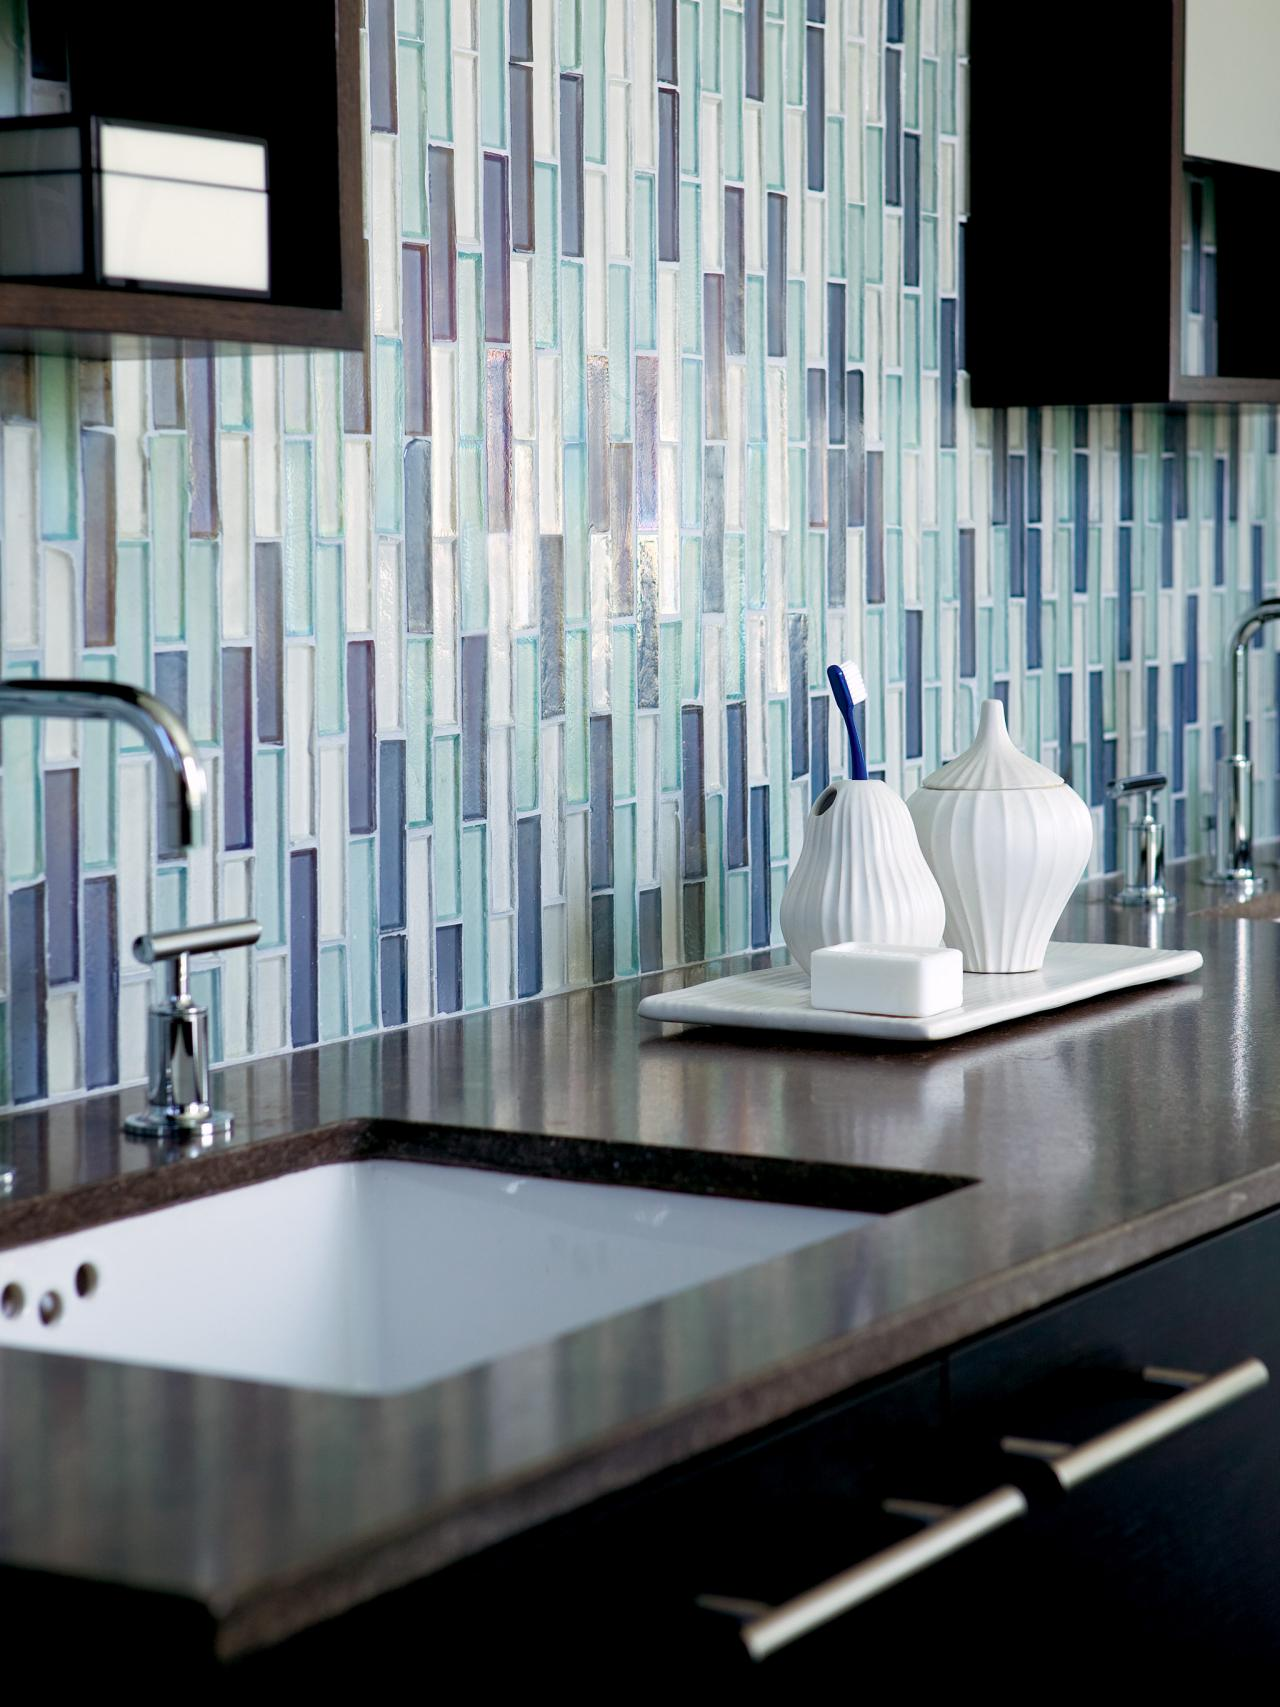 CI-Walker-Zanger_bathroom-tile-blues_v.jpg.rend.hgtvcom.1280.1707